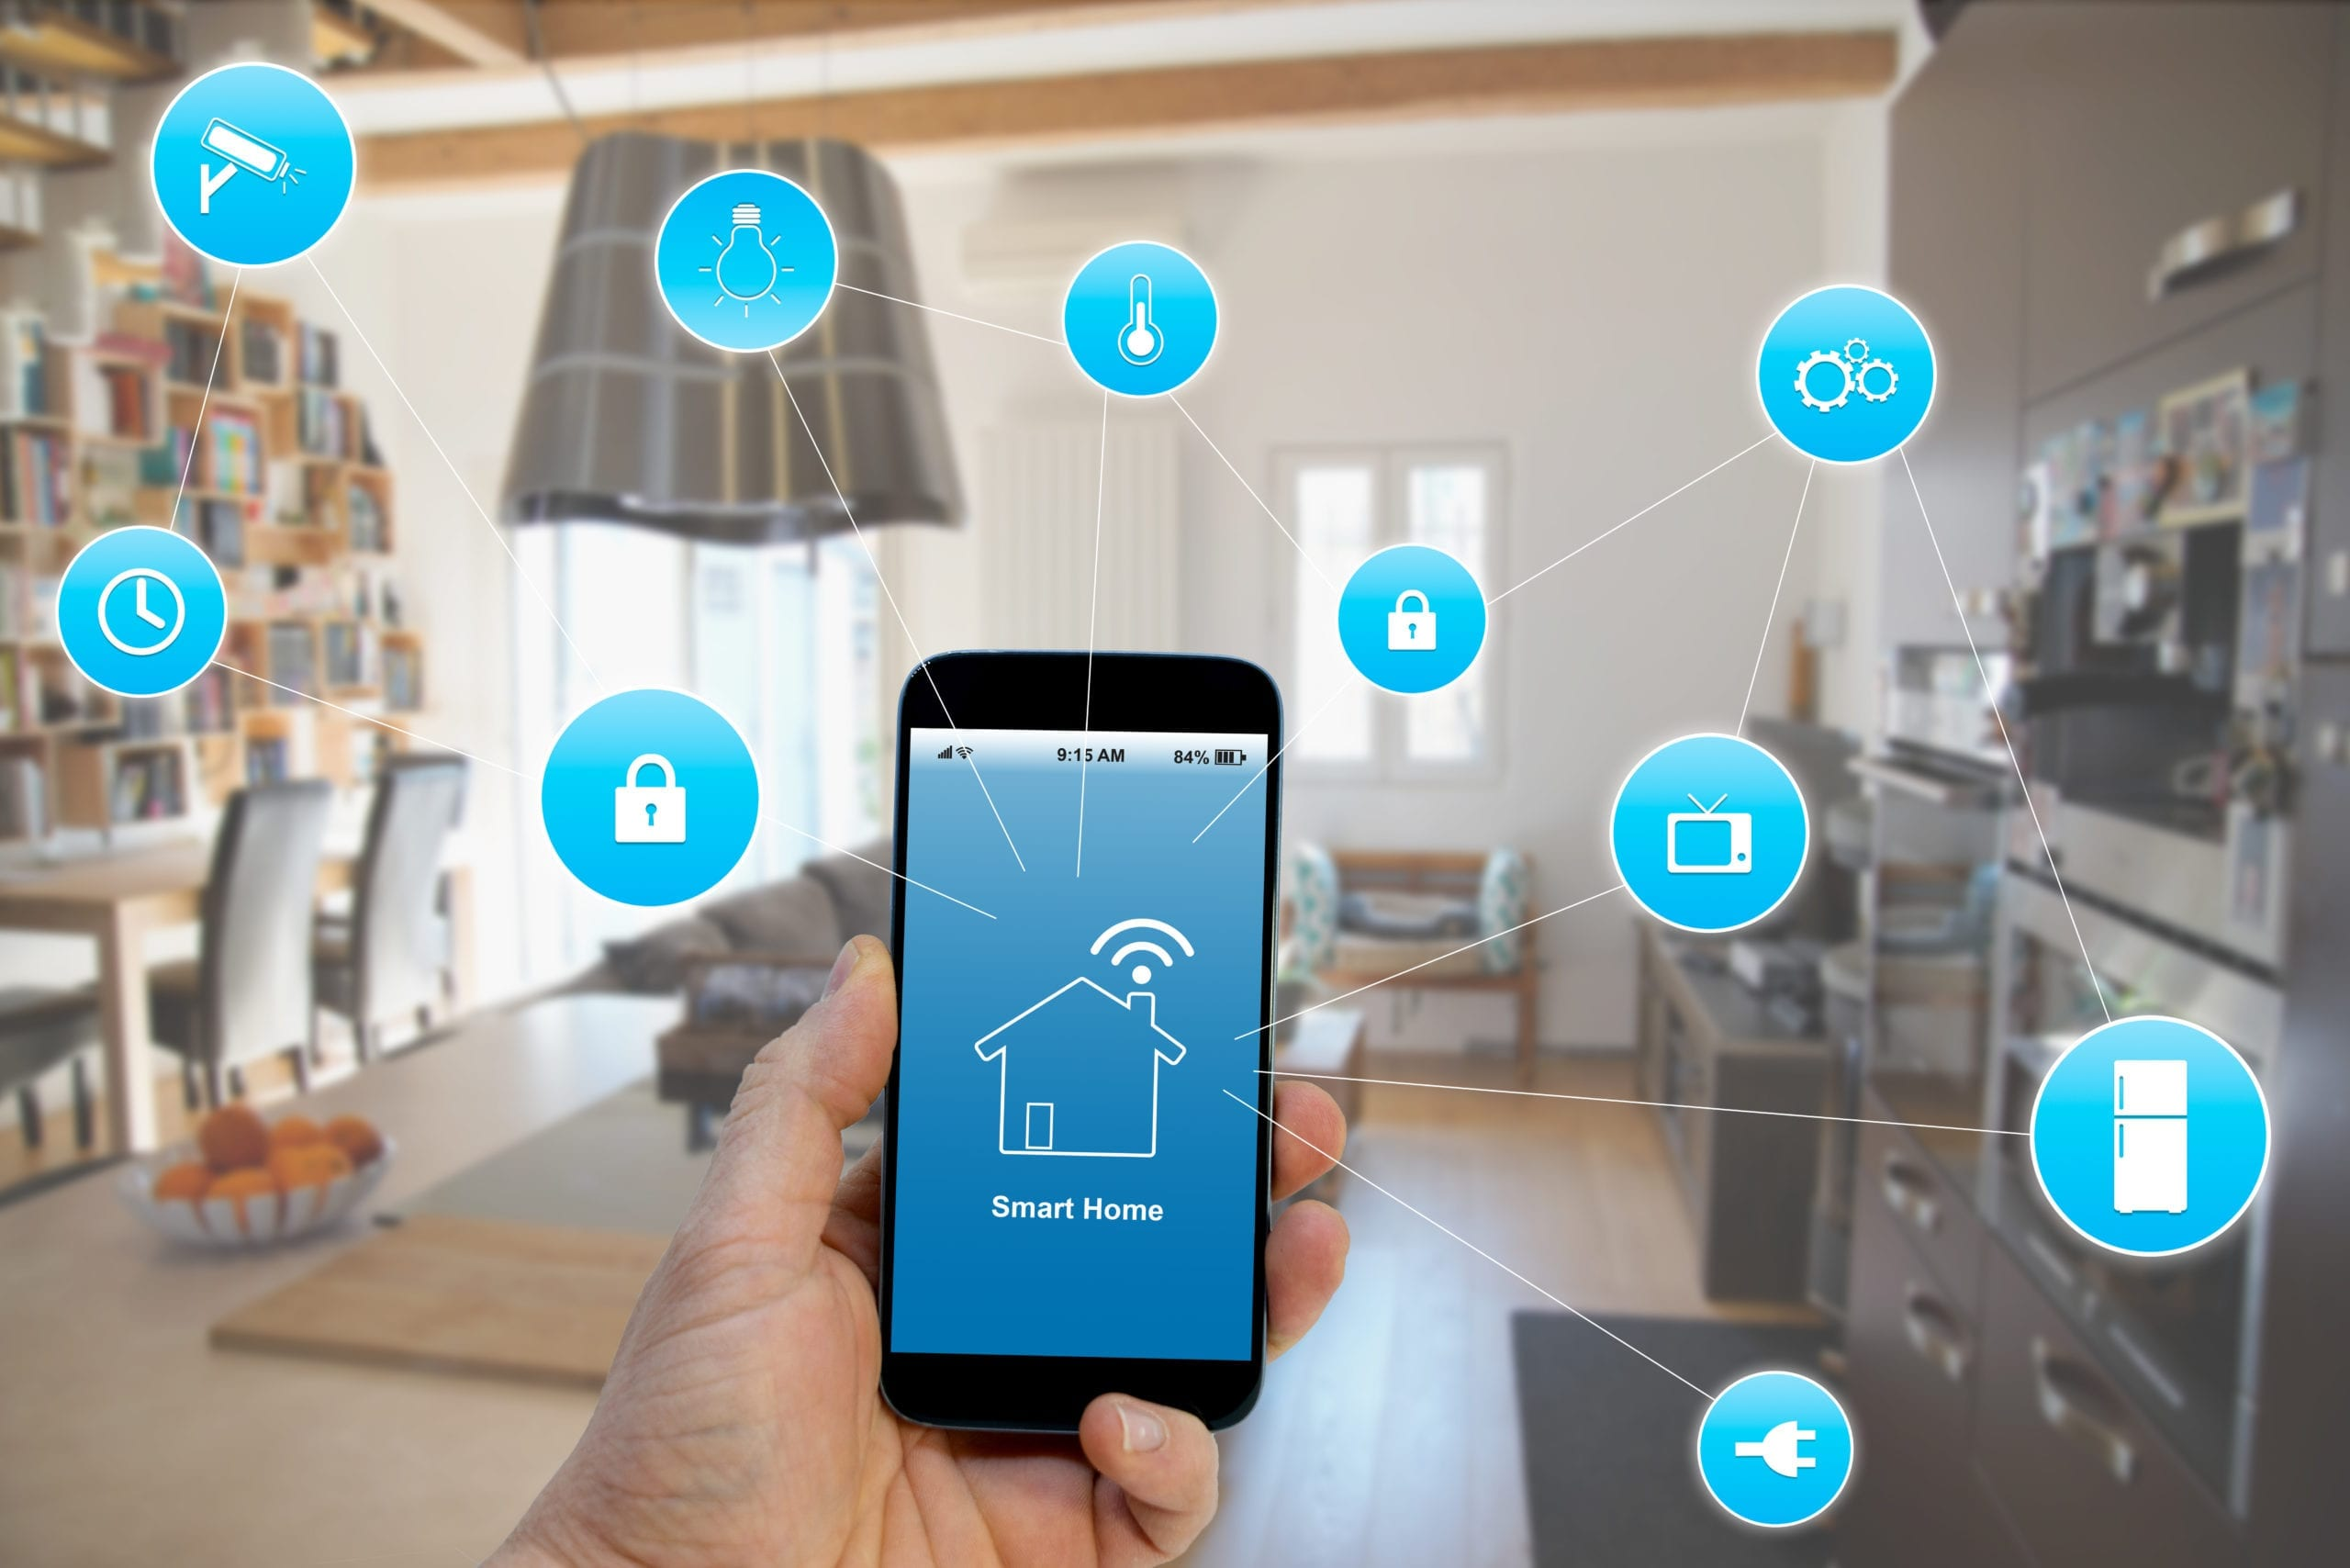 RTH can help install and support smart TVs, appliances, security systems, and more.